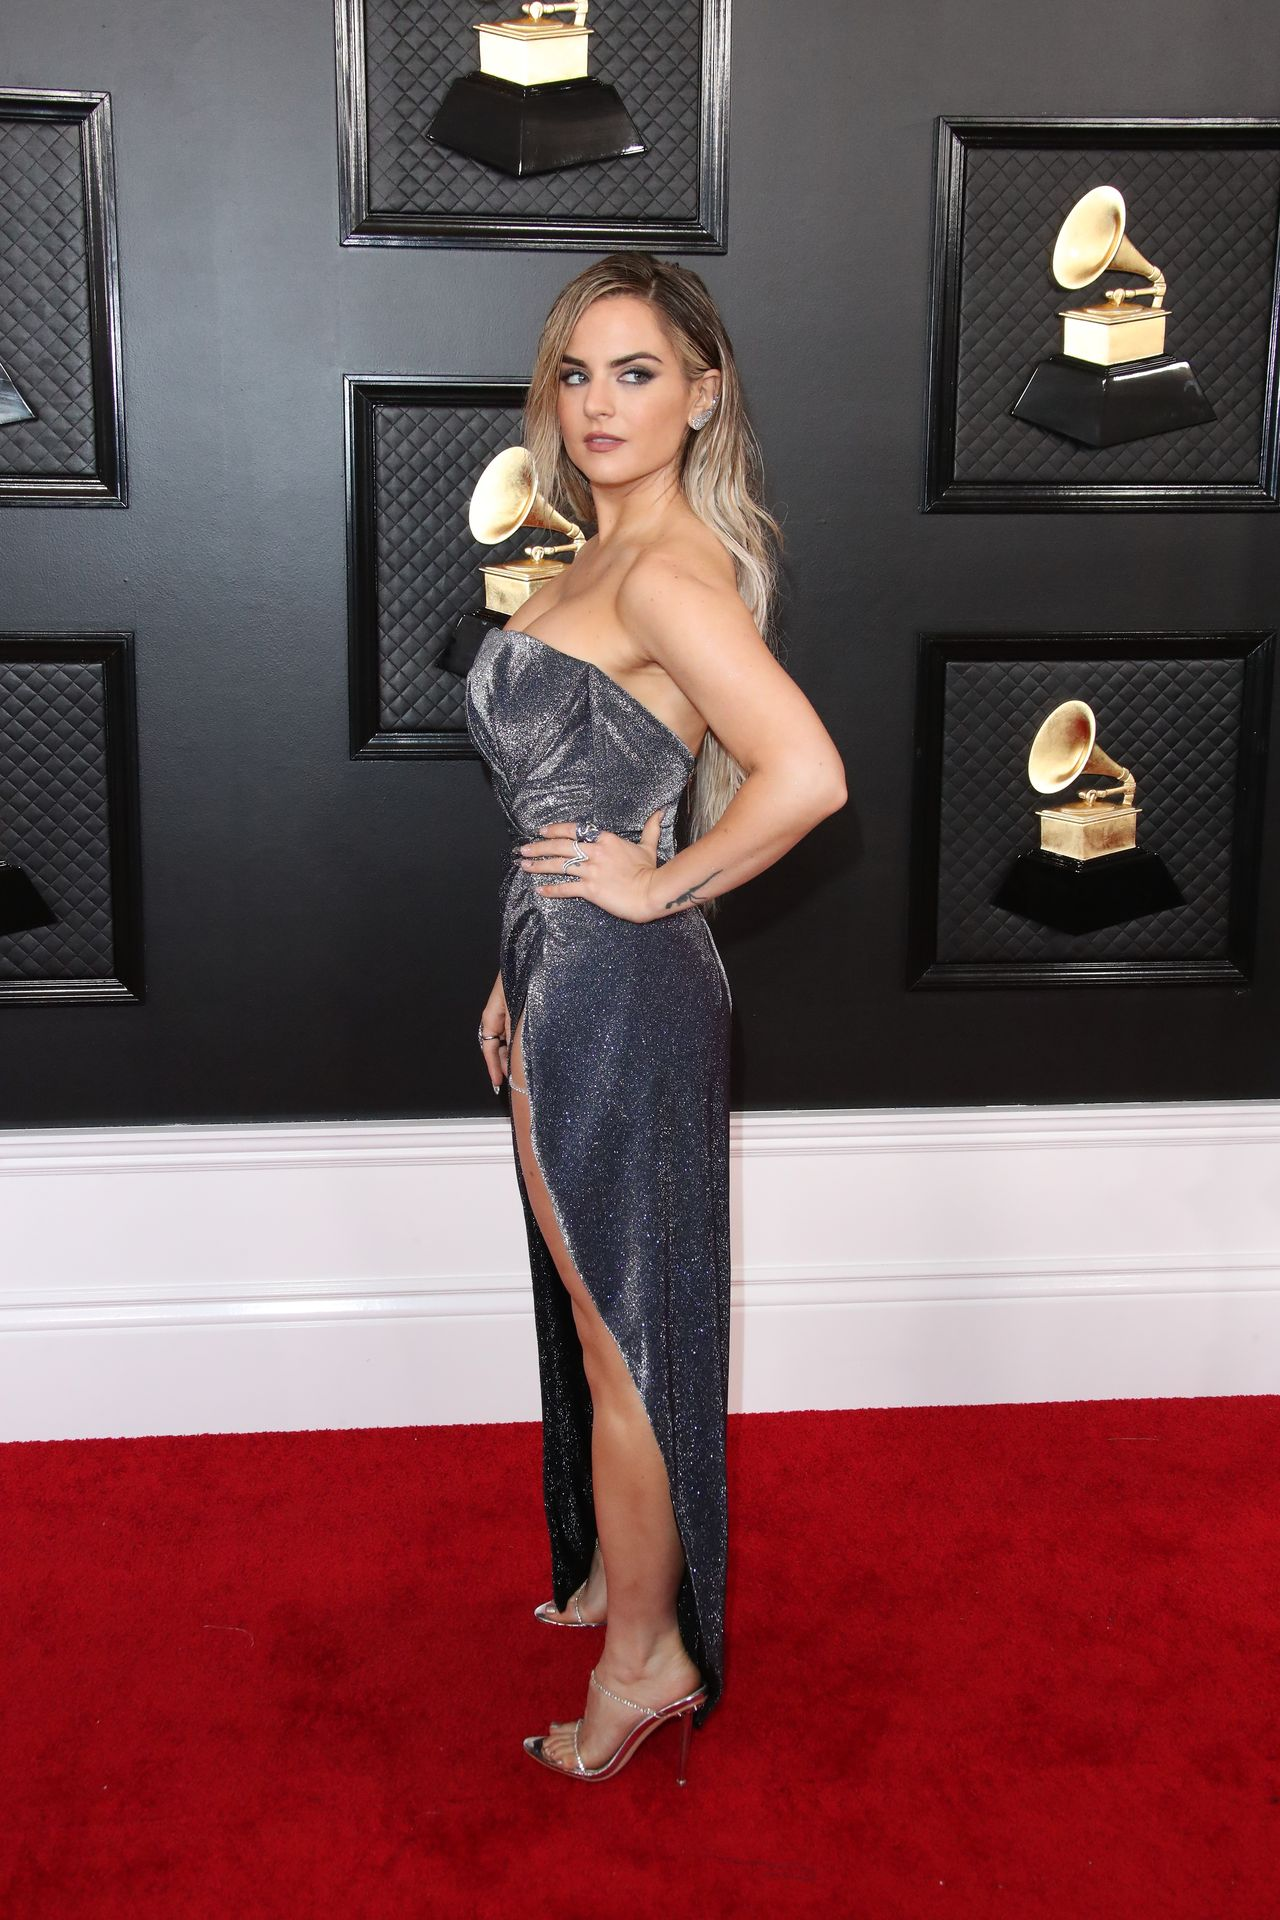 Jojo Shows Her Legs And Cleavage At The 62nd Annual Grammy Awards 0029